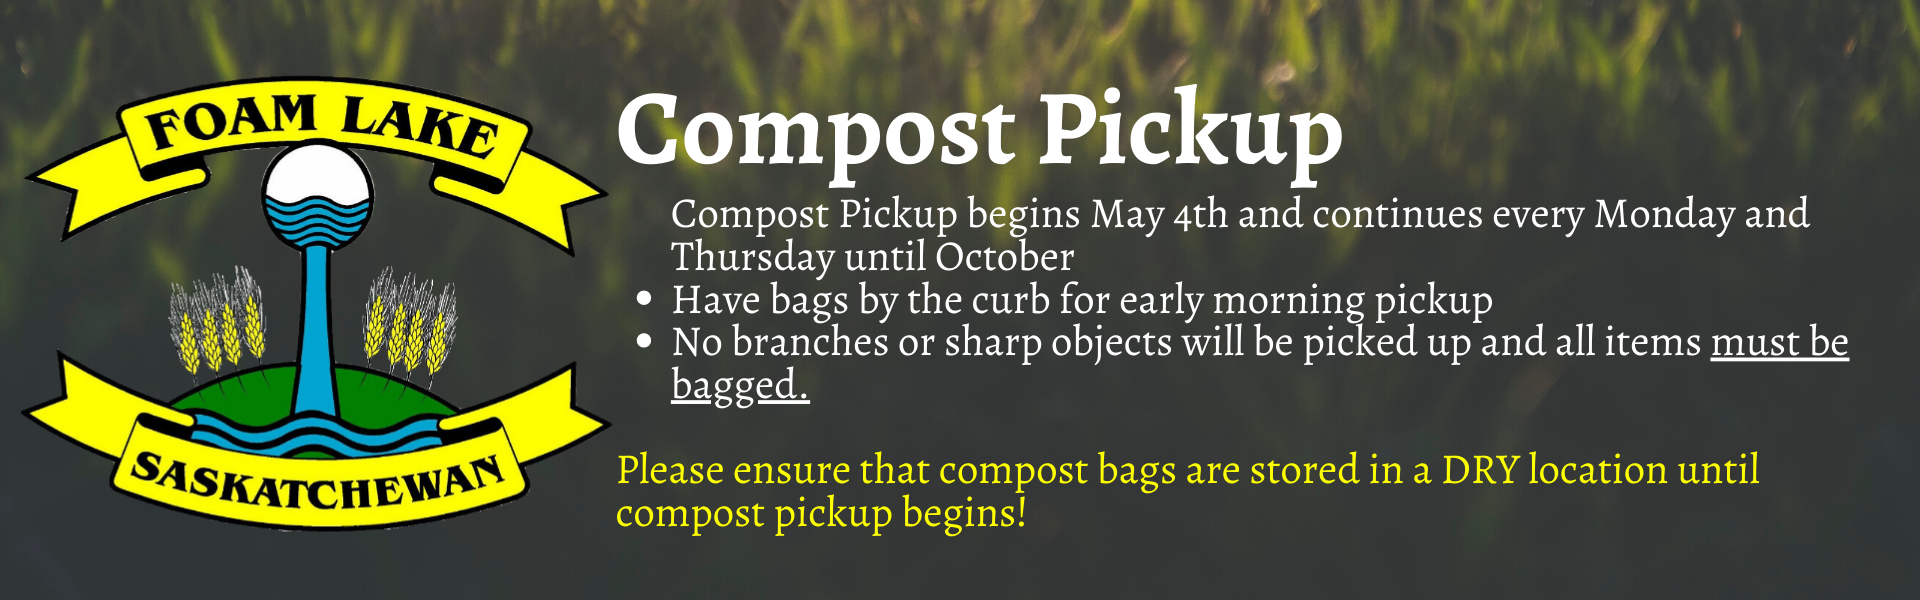 Copy of Compost Pickup begins May 4th (1)